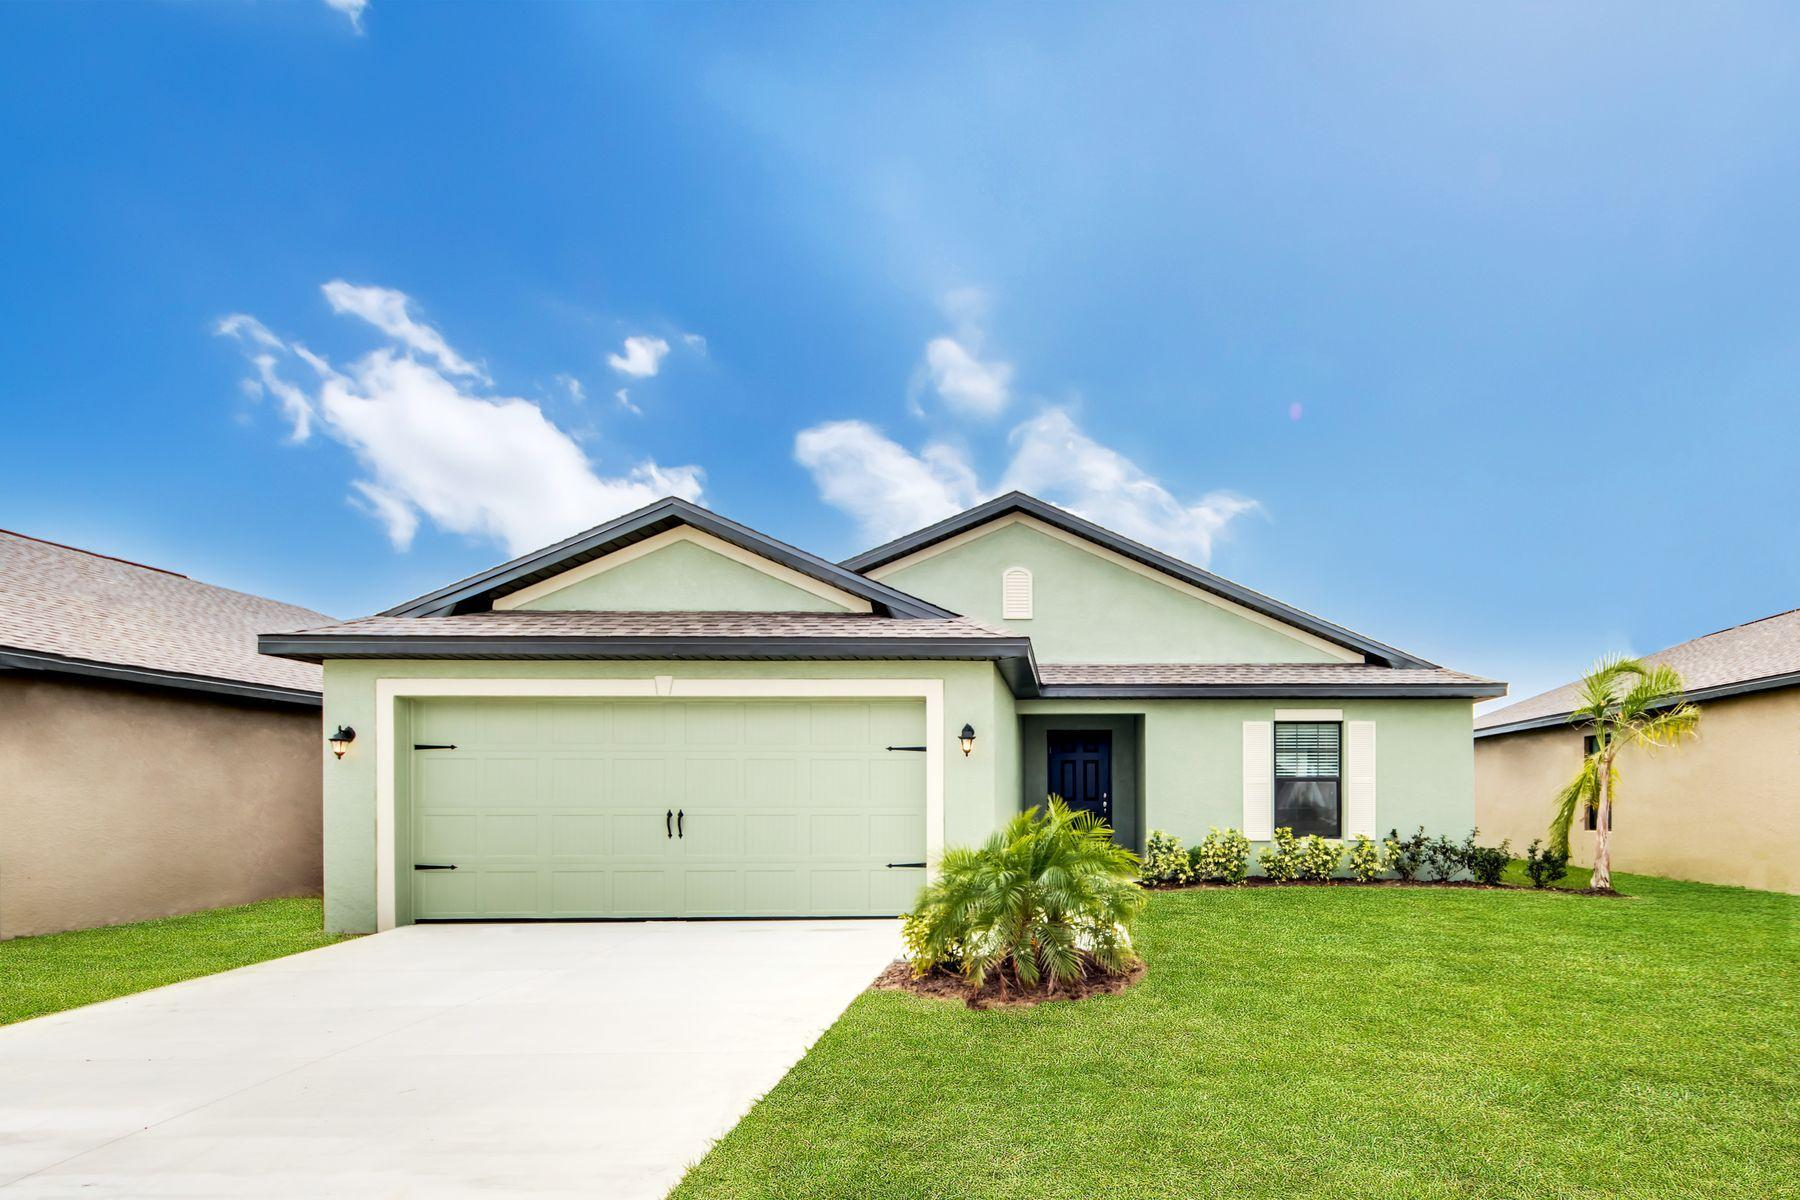 The Bokeelia by LGI Homes:Lush front yard landscaping adds to great curb appeal at the Bokeelia